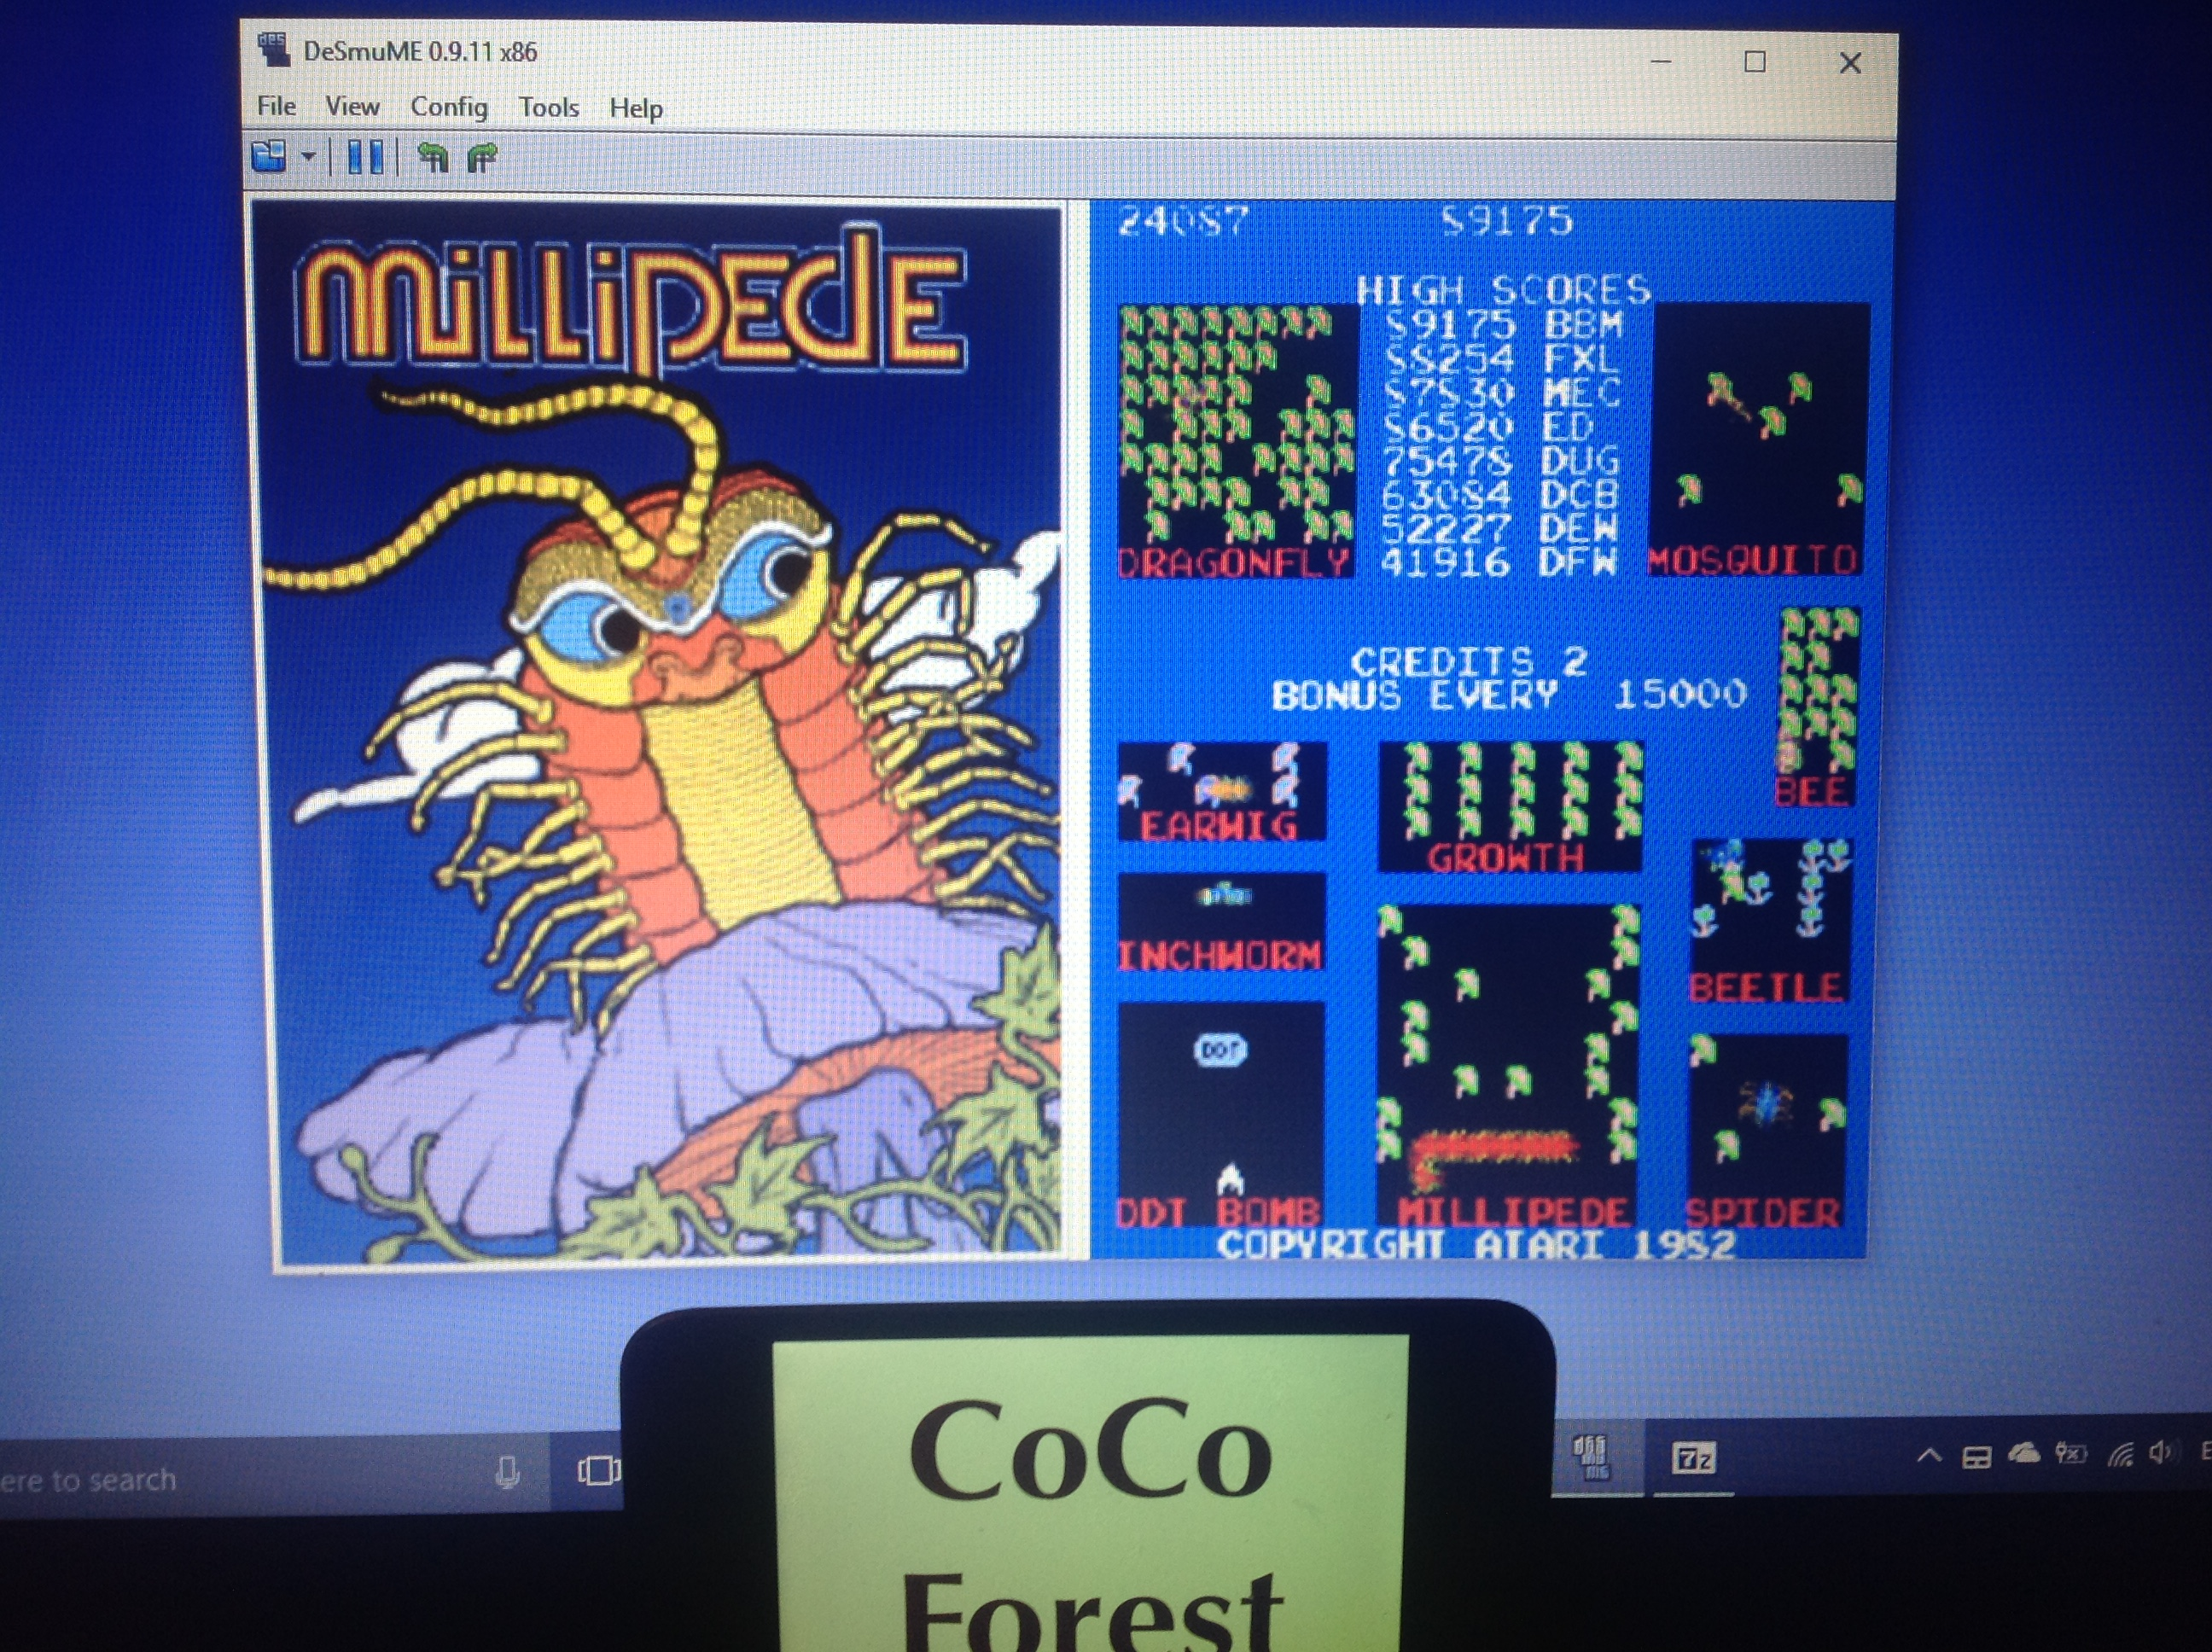 CoCoForest: Atari Greatest Hits: Volume 2: Millipede [Arcade] (Nintendo DS Emulated) 24,087 points on 2018-01-31 09:26:21